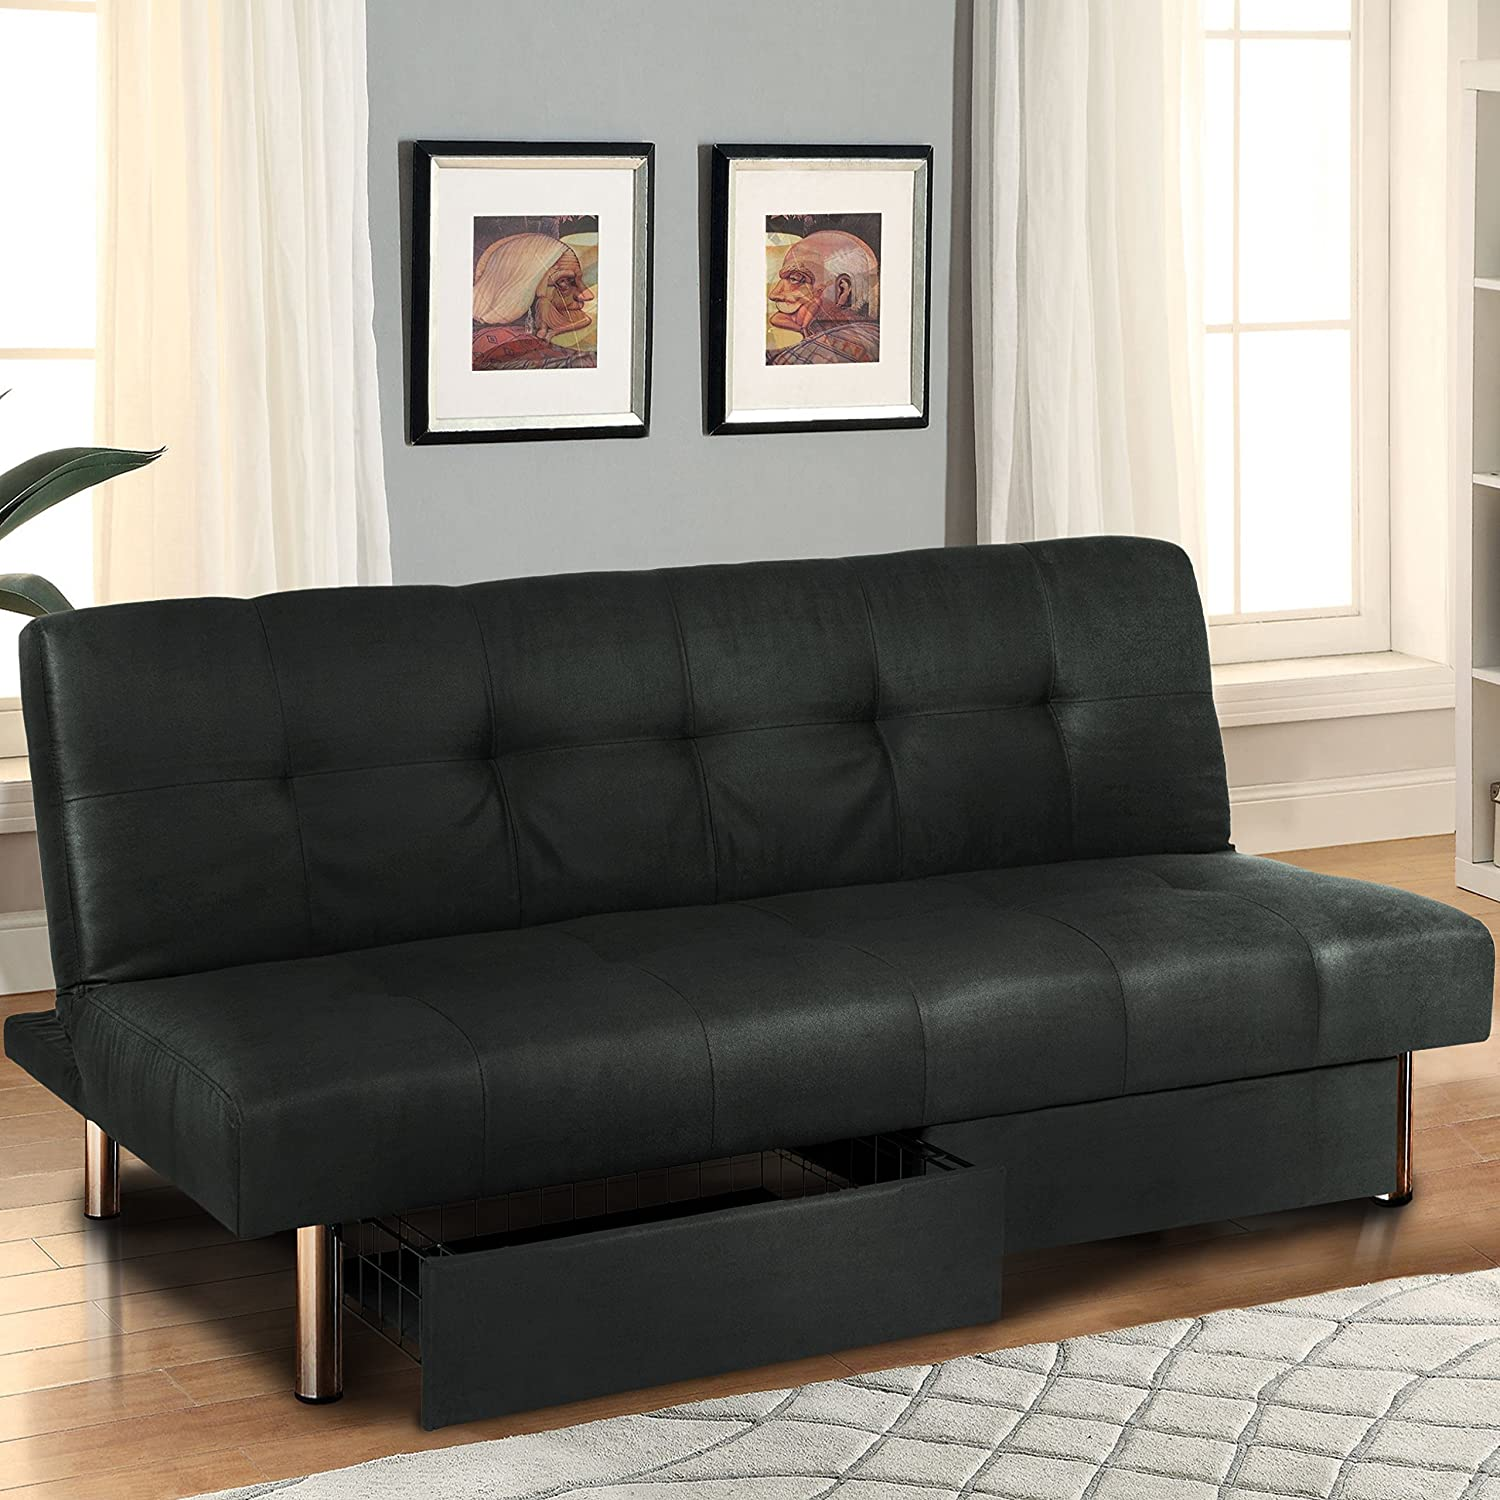 Amazon Best Choice Products Microfiber Futon Folding Sofa Bed